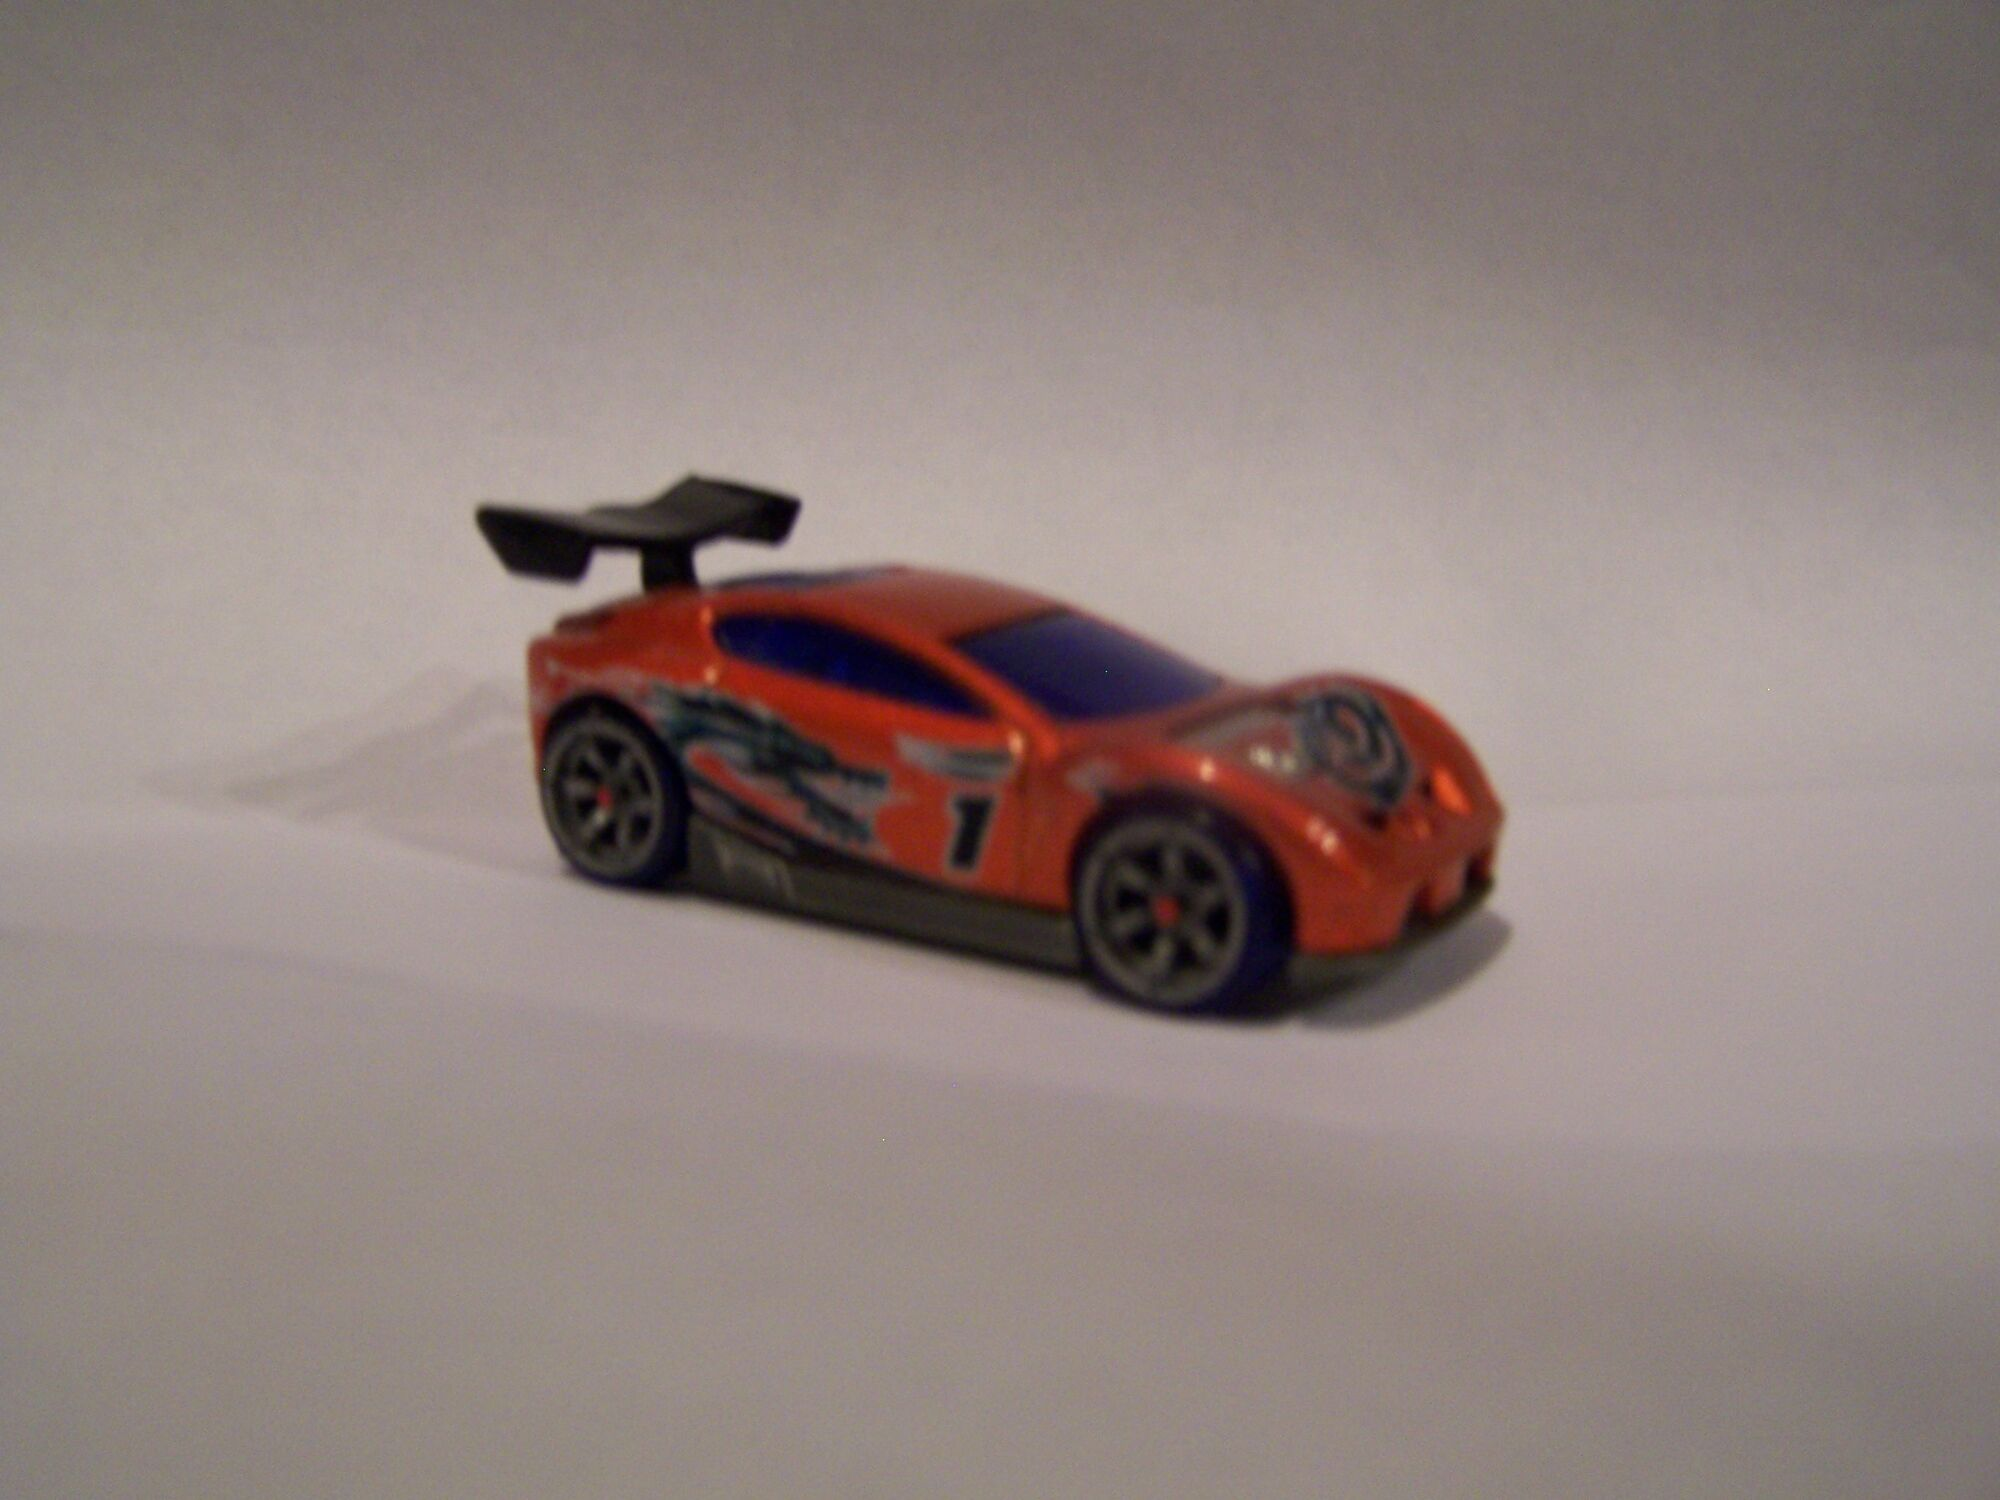 Synkro Hot Wheels Wiki Fandom Powered By Wikia